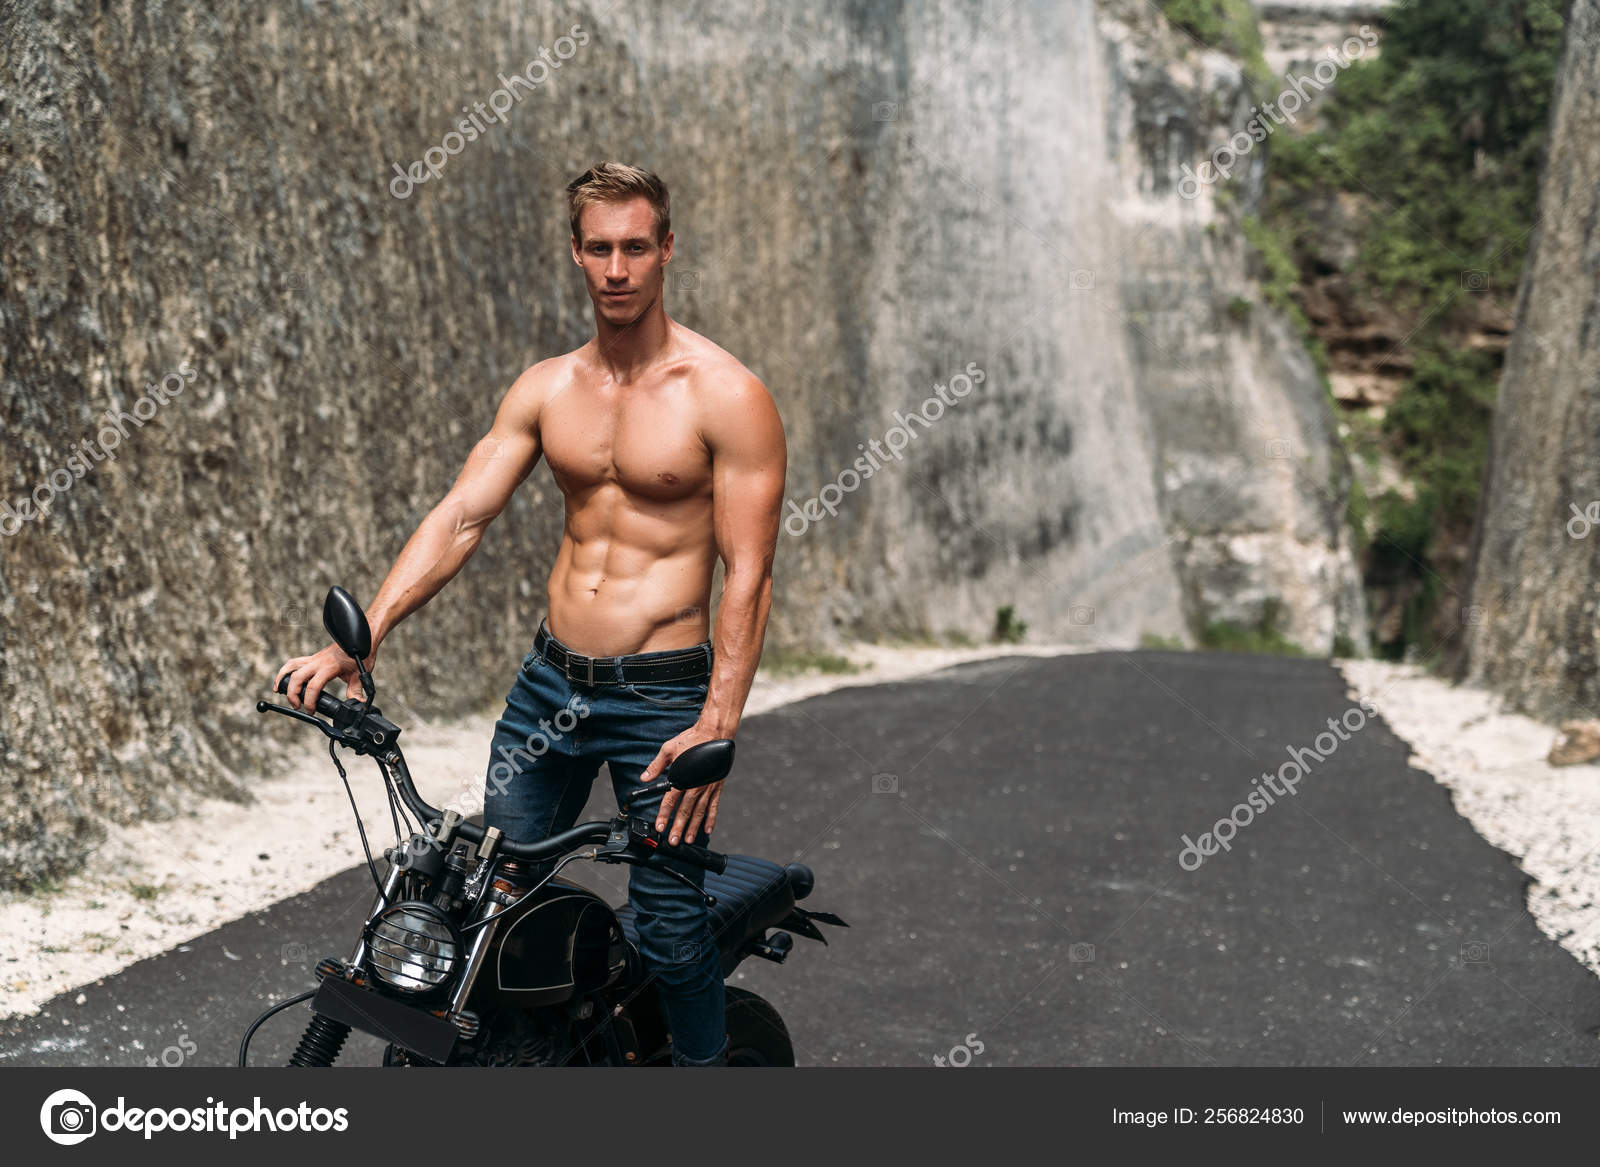 Sexy Muscular Man Riding On Motorbike On The Road Between The Rocks Stock Photo C Rmano Mail Ru 256824830